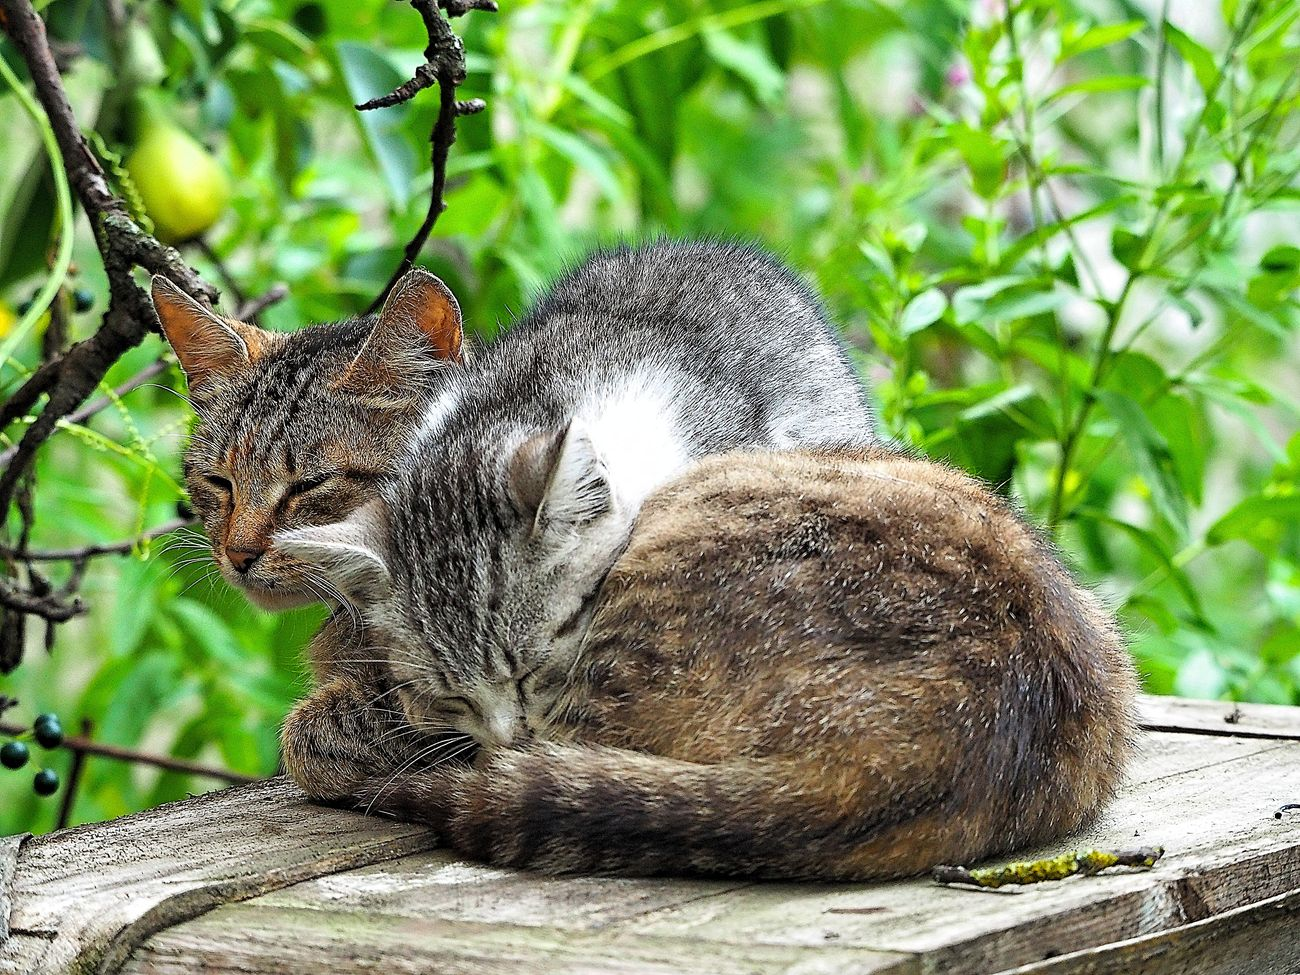 Animal Themes Backyardphotography Cat And Kitten Cats Cute Cats Domestic Cat Homeless Cats Laziness No People Pets Relaxation Sleeping Cats